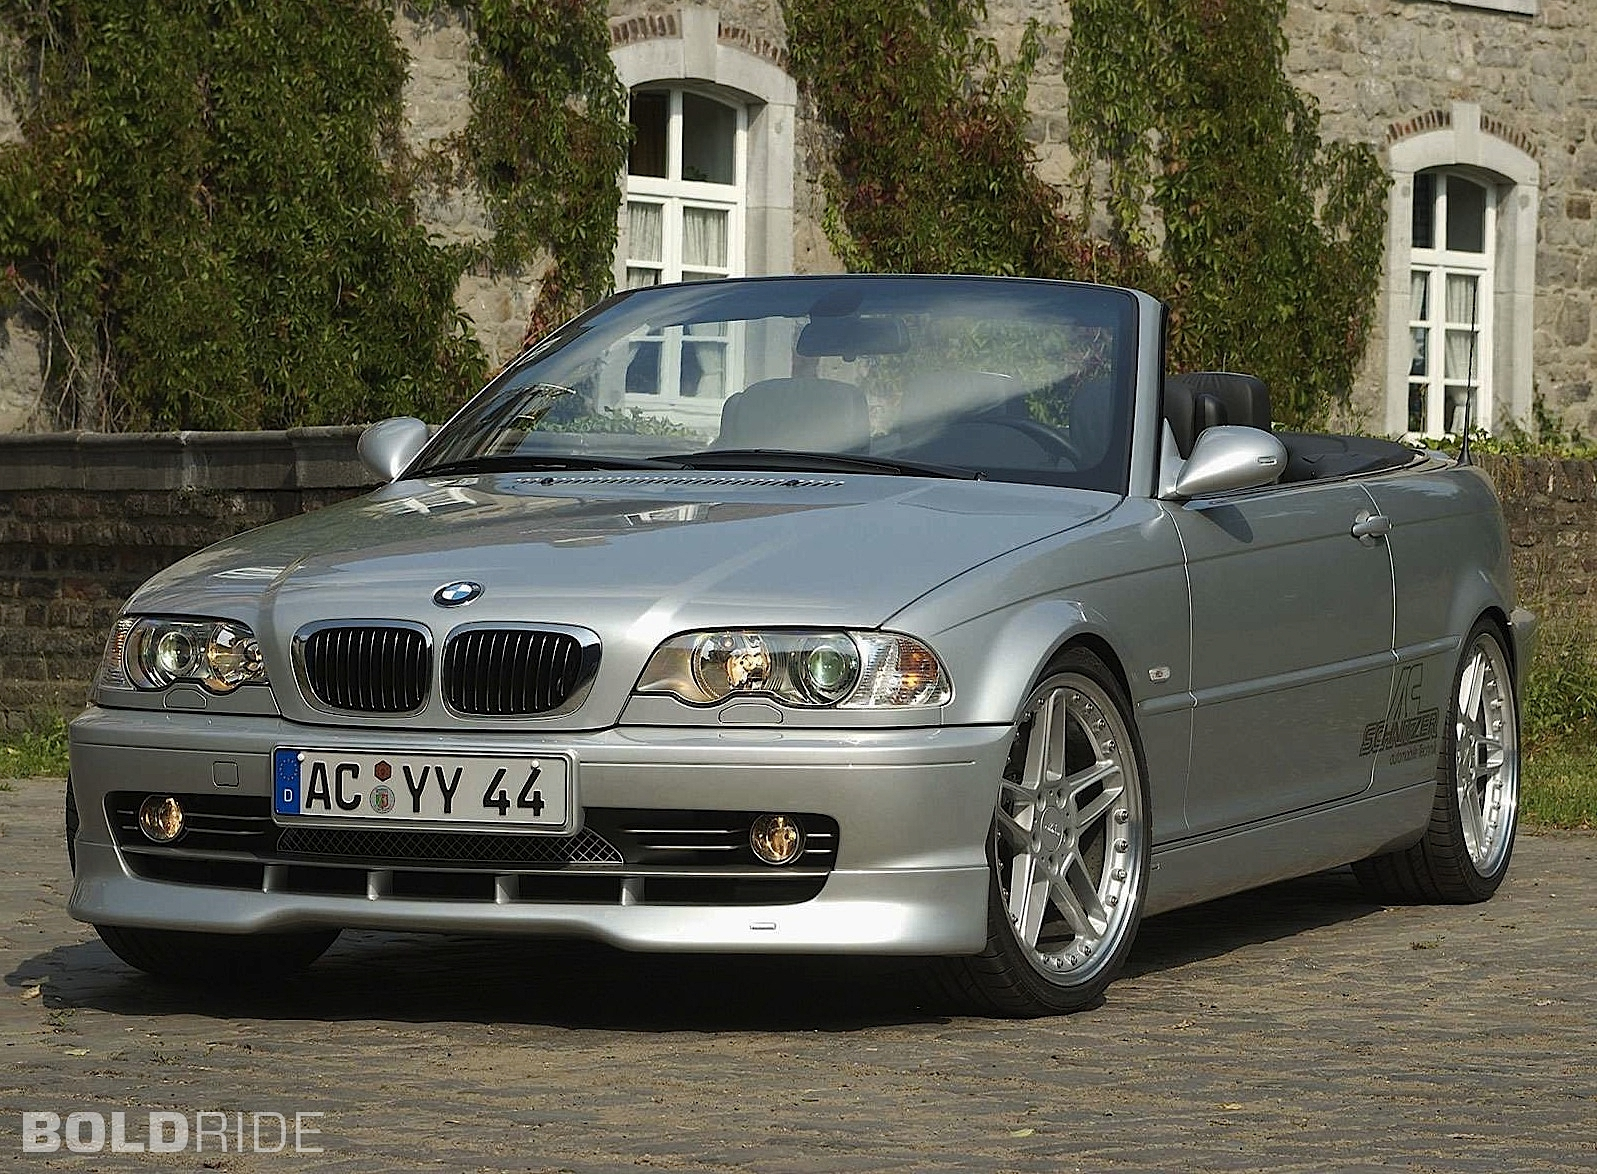 2004 Bmw 3 Series Information And Photos Neo Drive